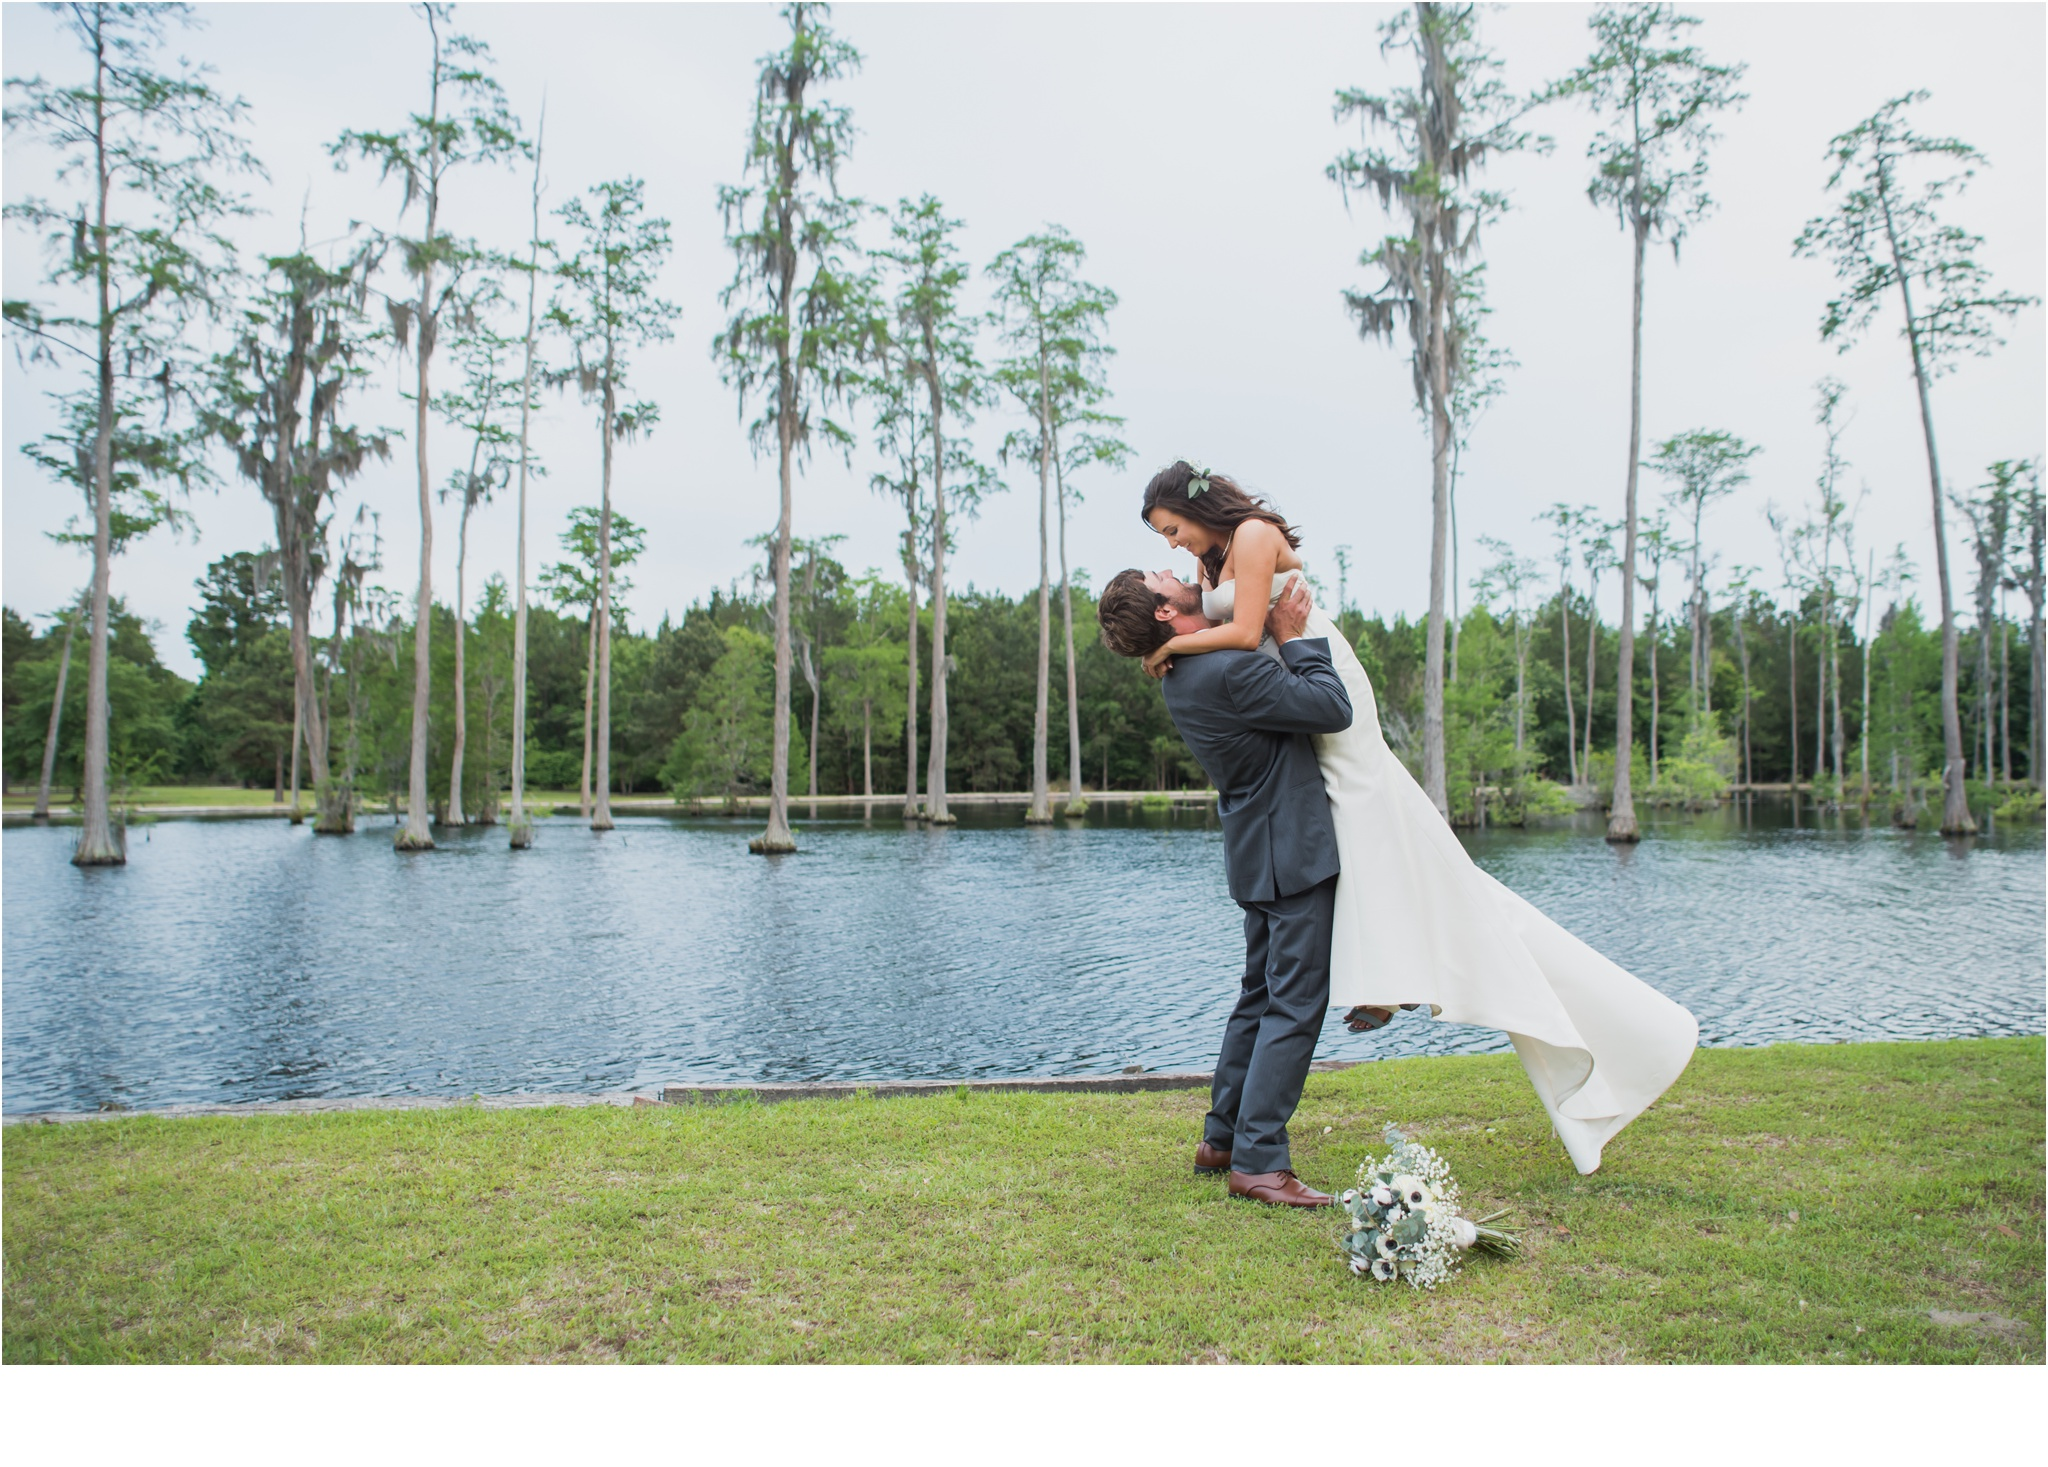 Rainey_Gregg_Photography_St._Simons_Island_Georgia_California_Wedding_Portrait_Photography_1010.jpg